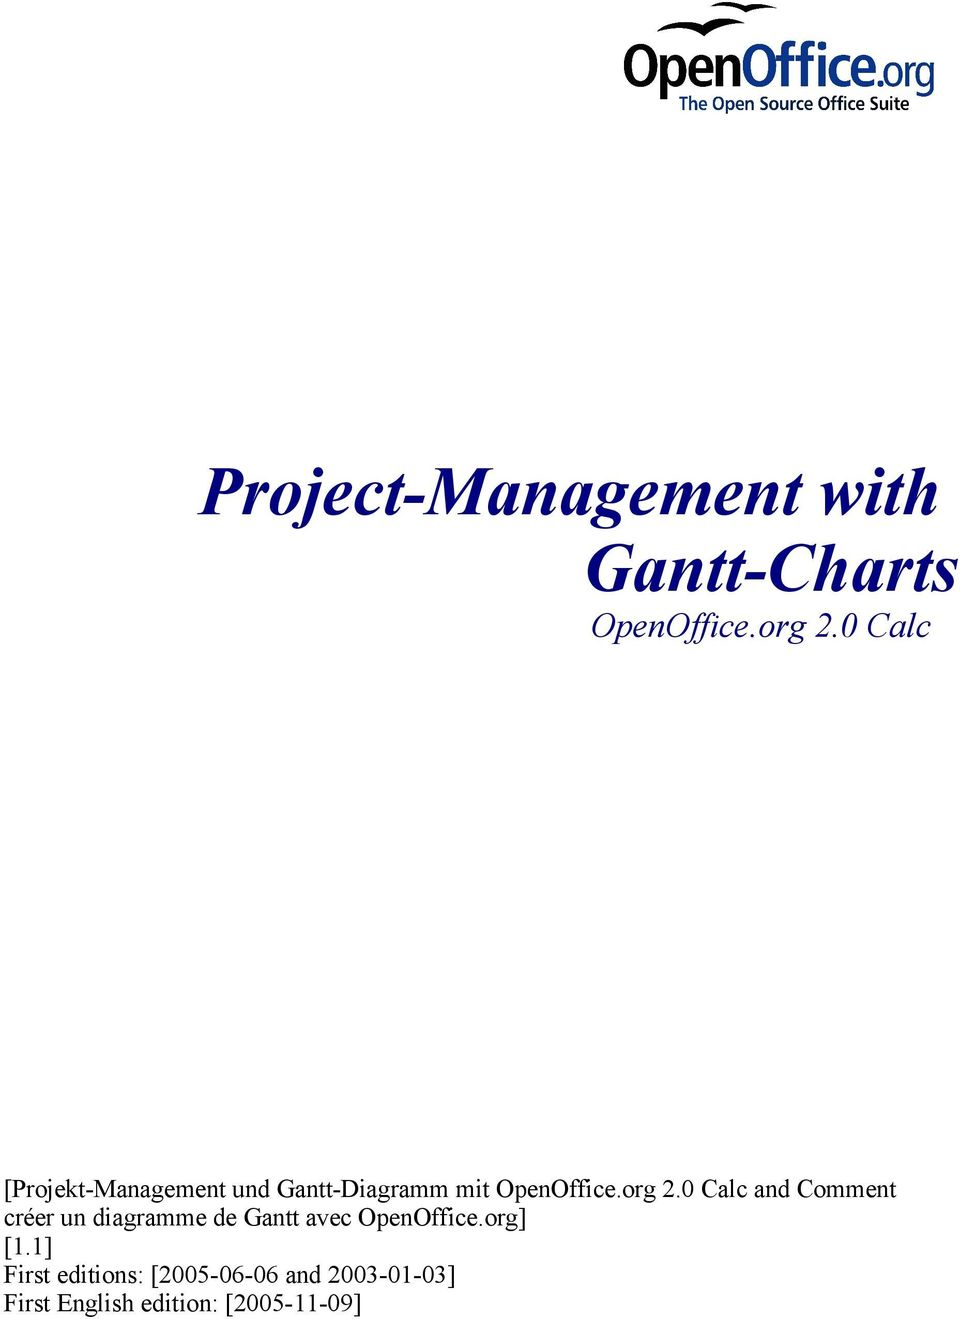 Project management with gantt charts pdf 0 calc and comment crer un diagramme de gantt avec openoffice ccuart